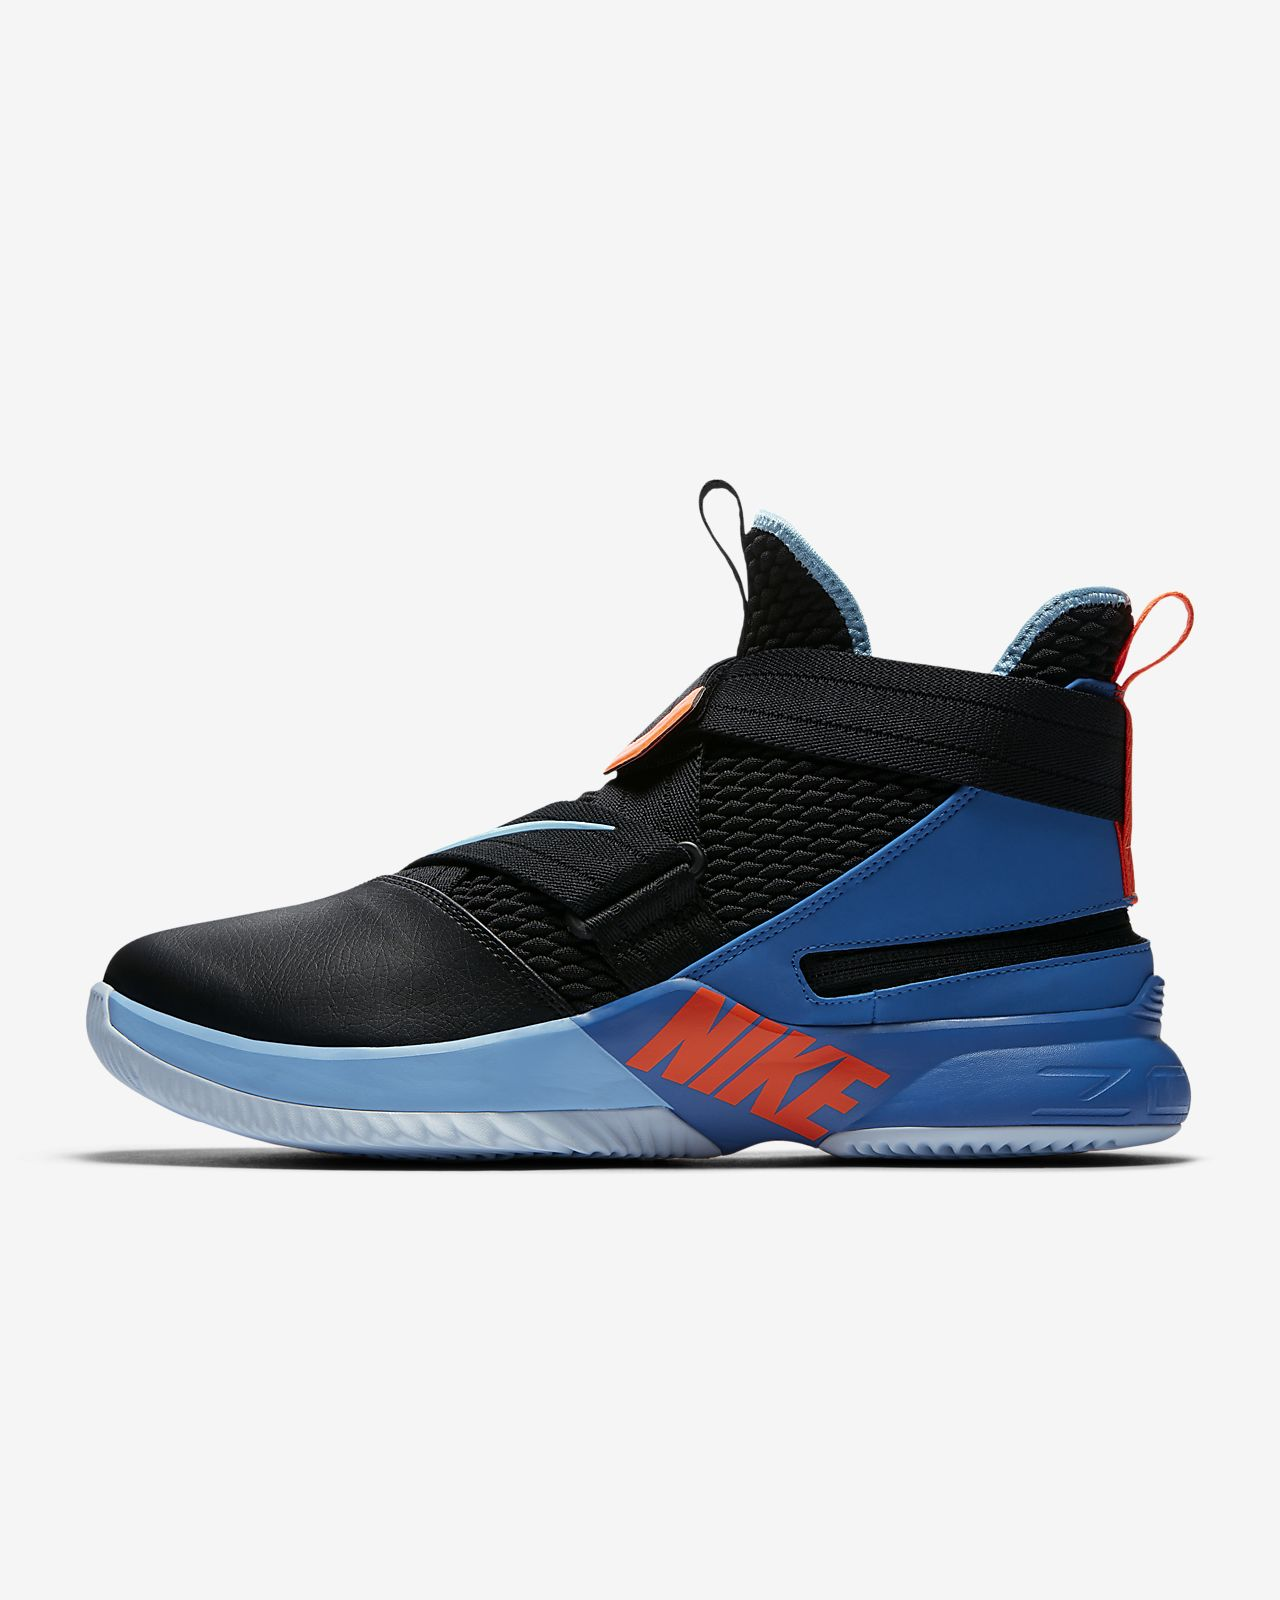 timeless design 292bf 2fe85 Low Resolution LeBron Soldier 12 FlyEase Men s Basketball Shoe LeBron  Soldier 12 FlyEase Men s Basketball Shoe